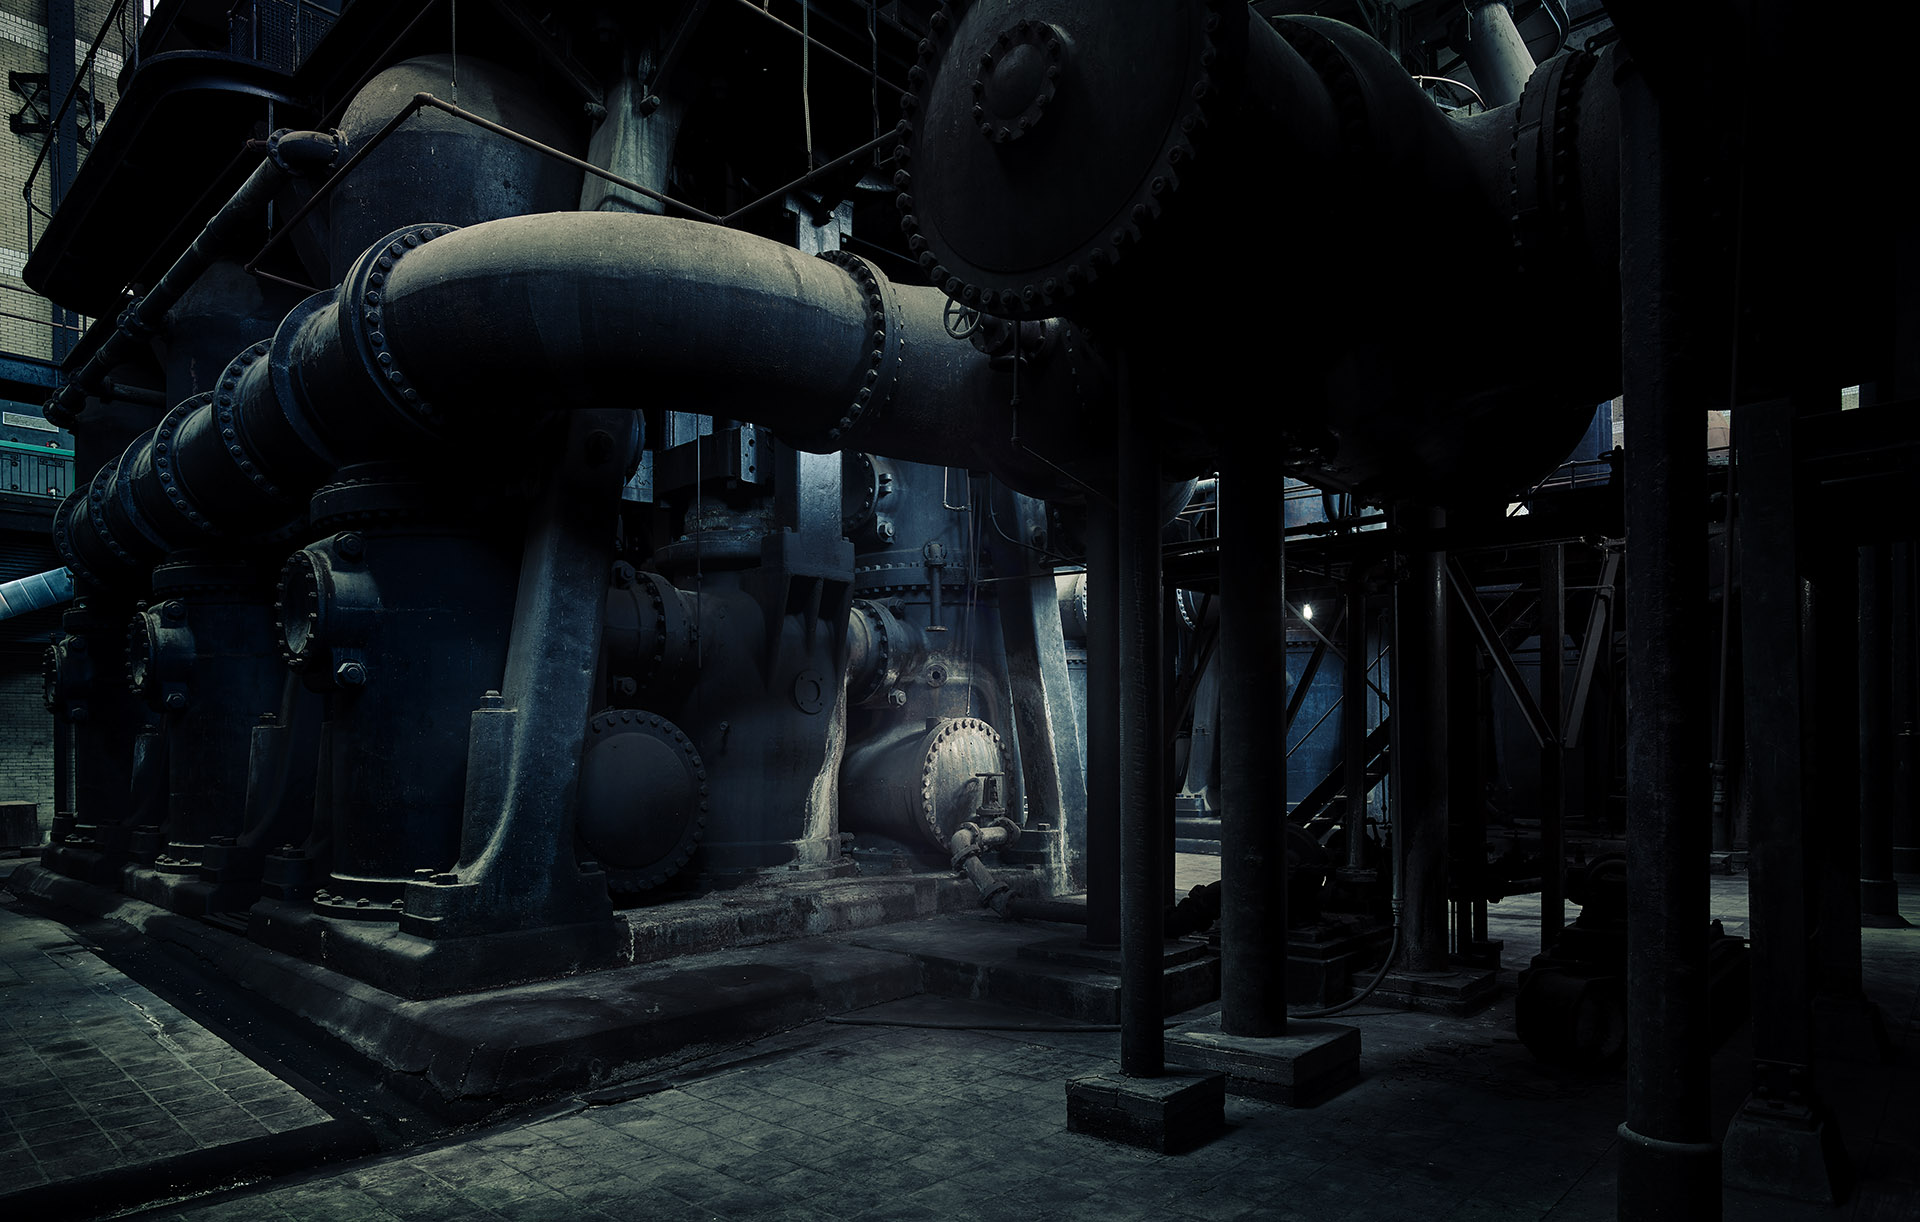 Pipes and motors inside factory